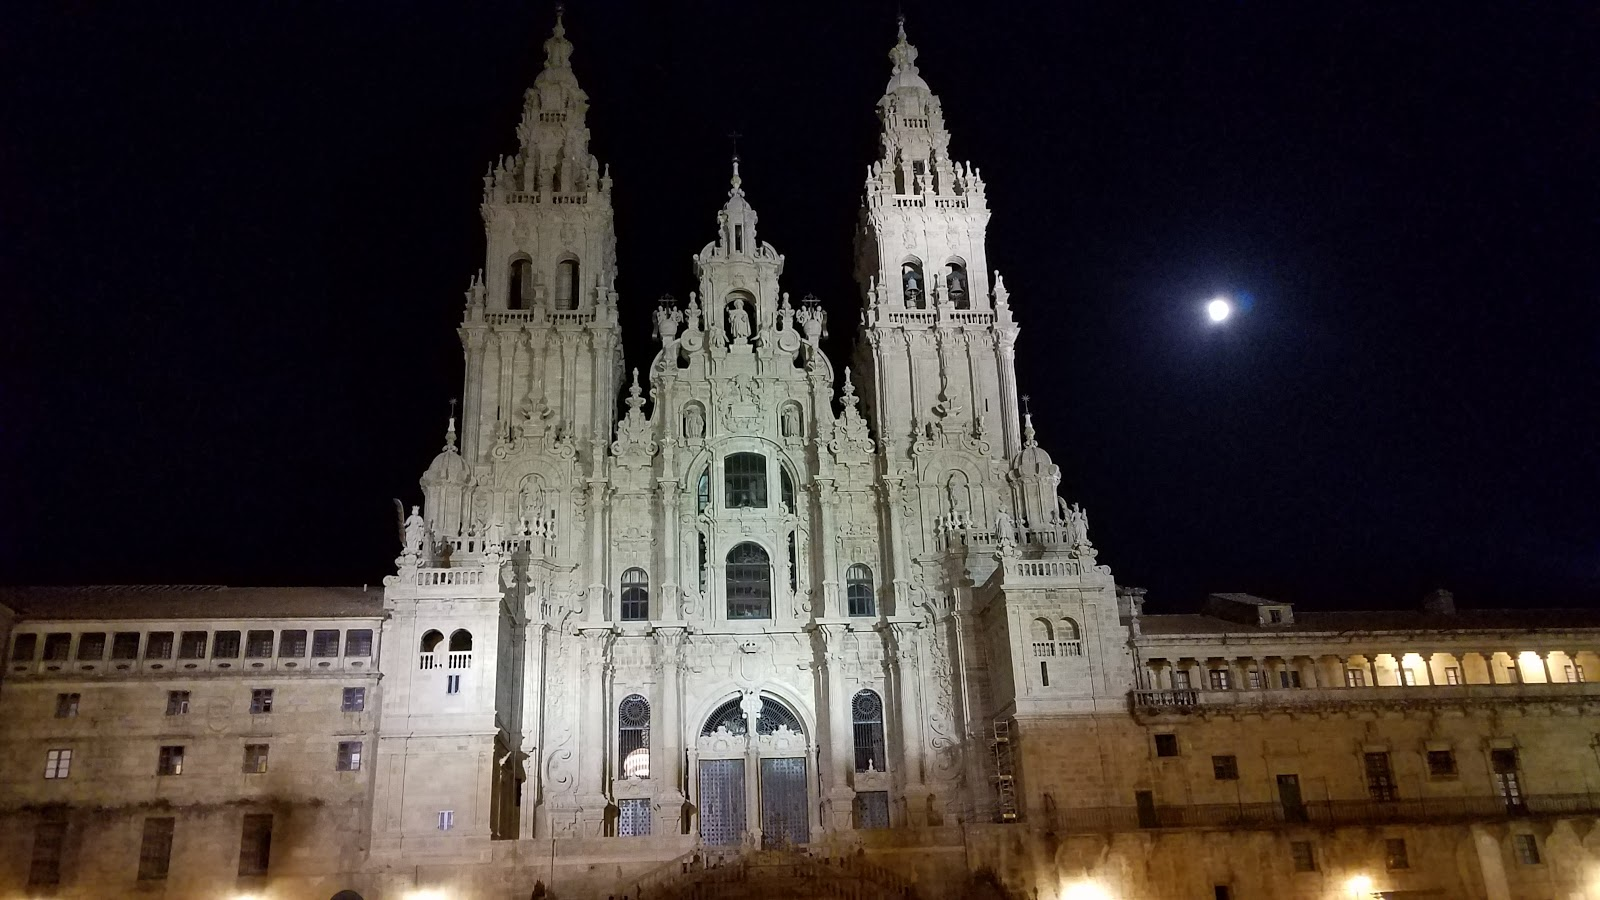 Midnight at the cathedral in Santiago de Compostela. It was so peaceful sitting in Obradoiro square and reflecting on the day of my arrival.